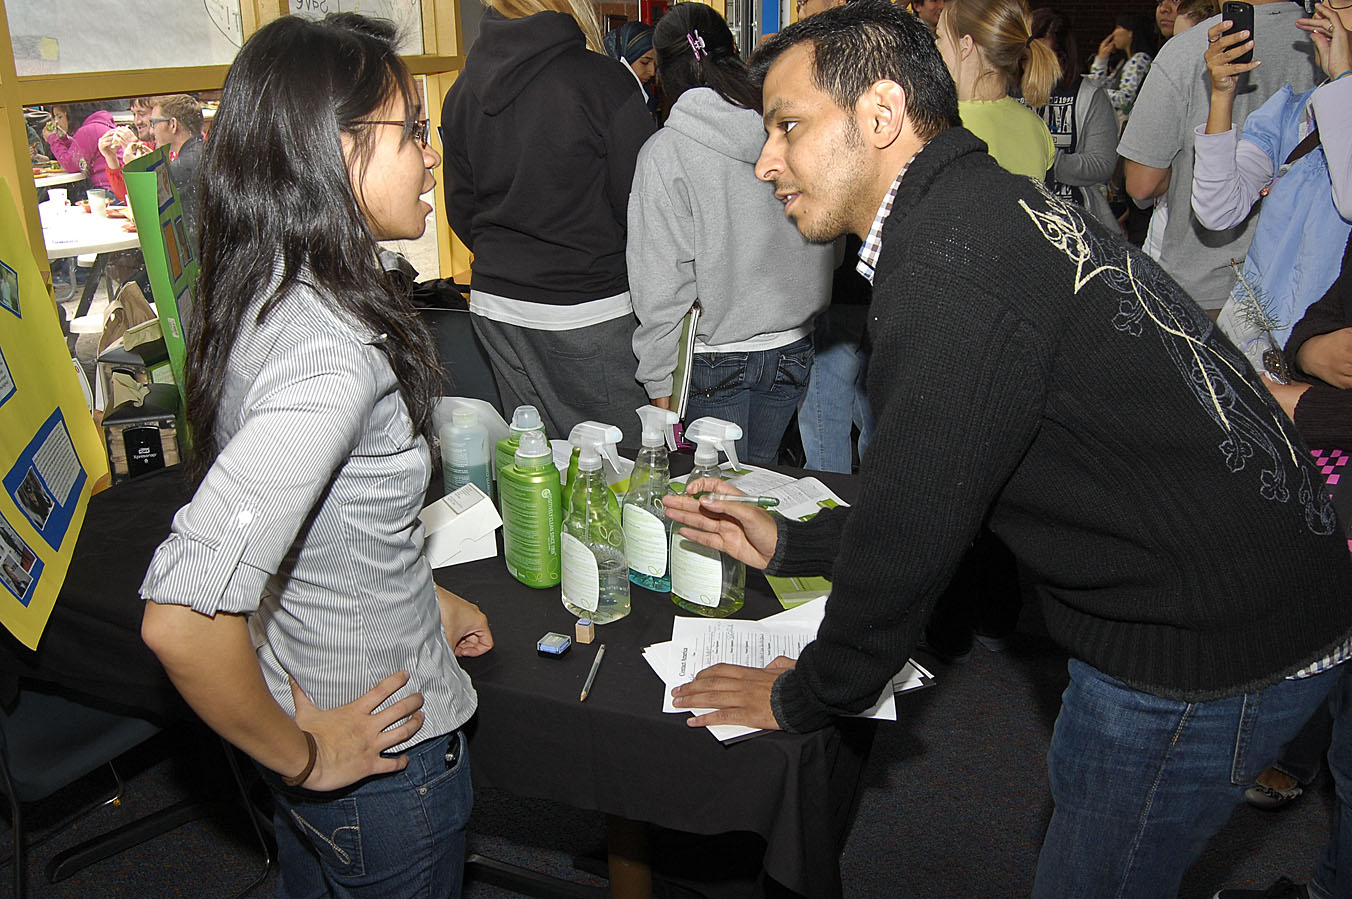 Stephanie White, a junior athletic training major, introduces Muhammad Alsulayman to Legacy of Clean, a line of environmentally sensitive cleaning products by Amway Global. Students piled into Davenport Dining Hall on April 22 for Commuter Day and Earth Day, an event to inform students of ways to help the environment. An array of booths provided tips and lessons on going green./ photo by Christopher Guzman